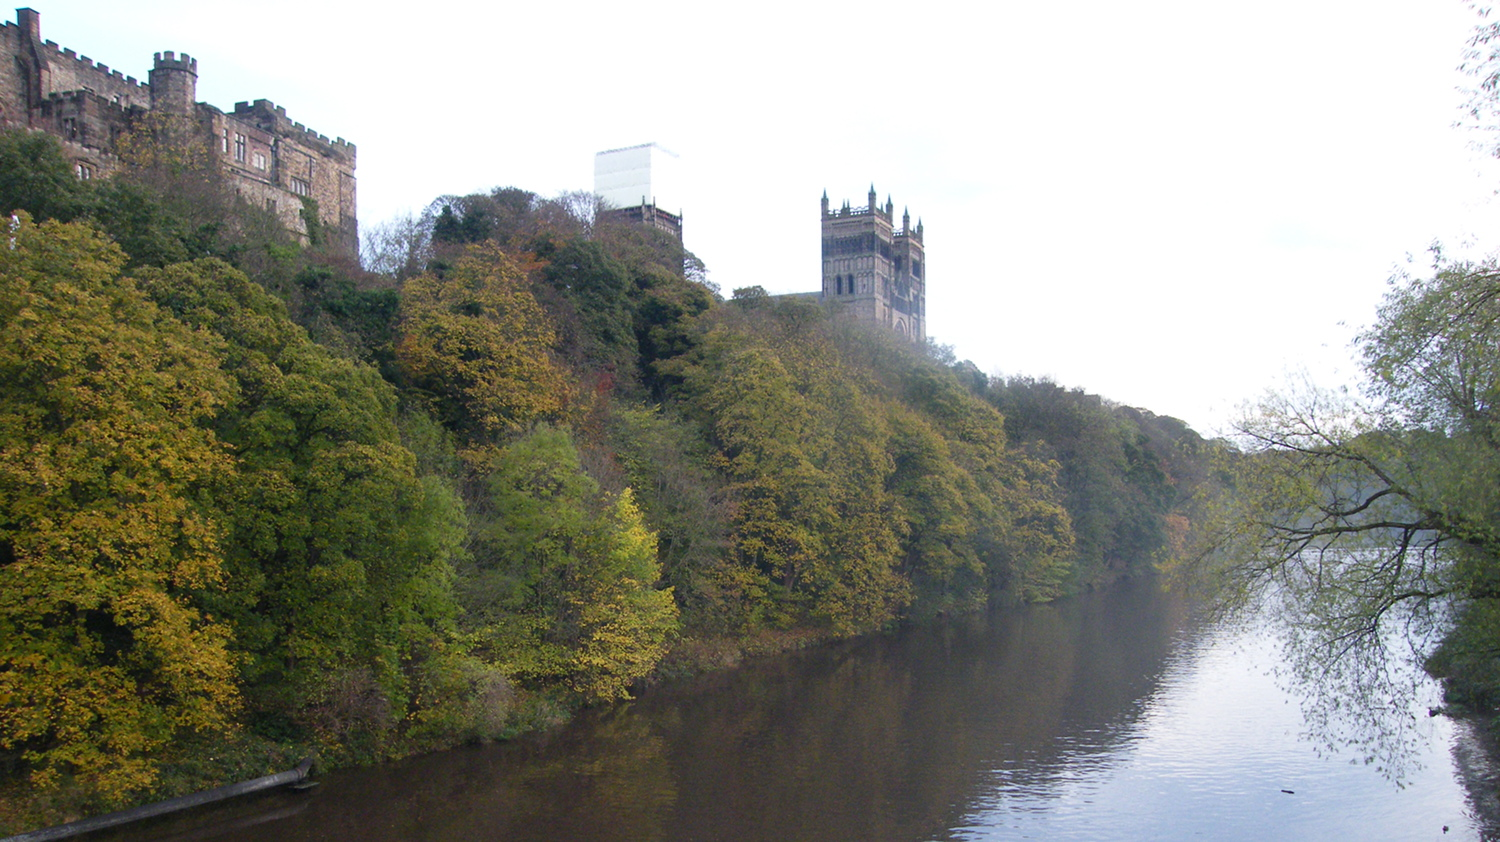 A nice picture of Durham Cathedral.